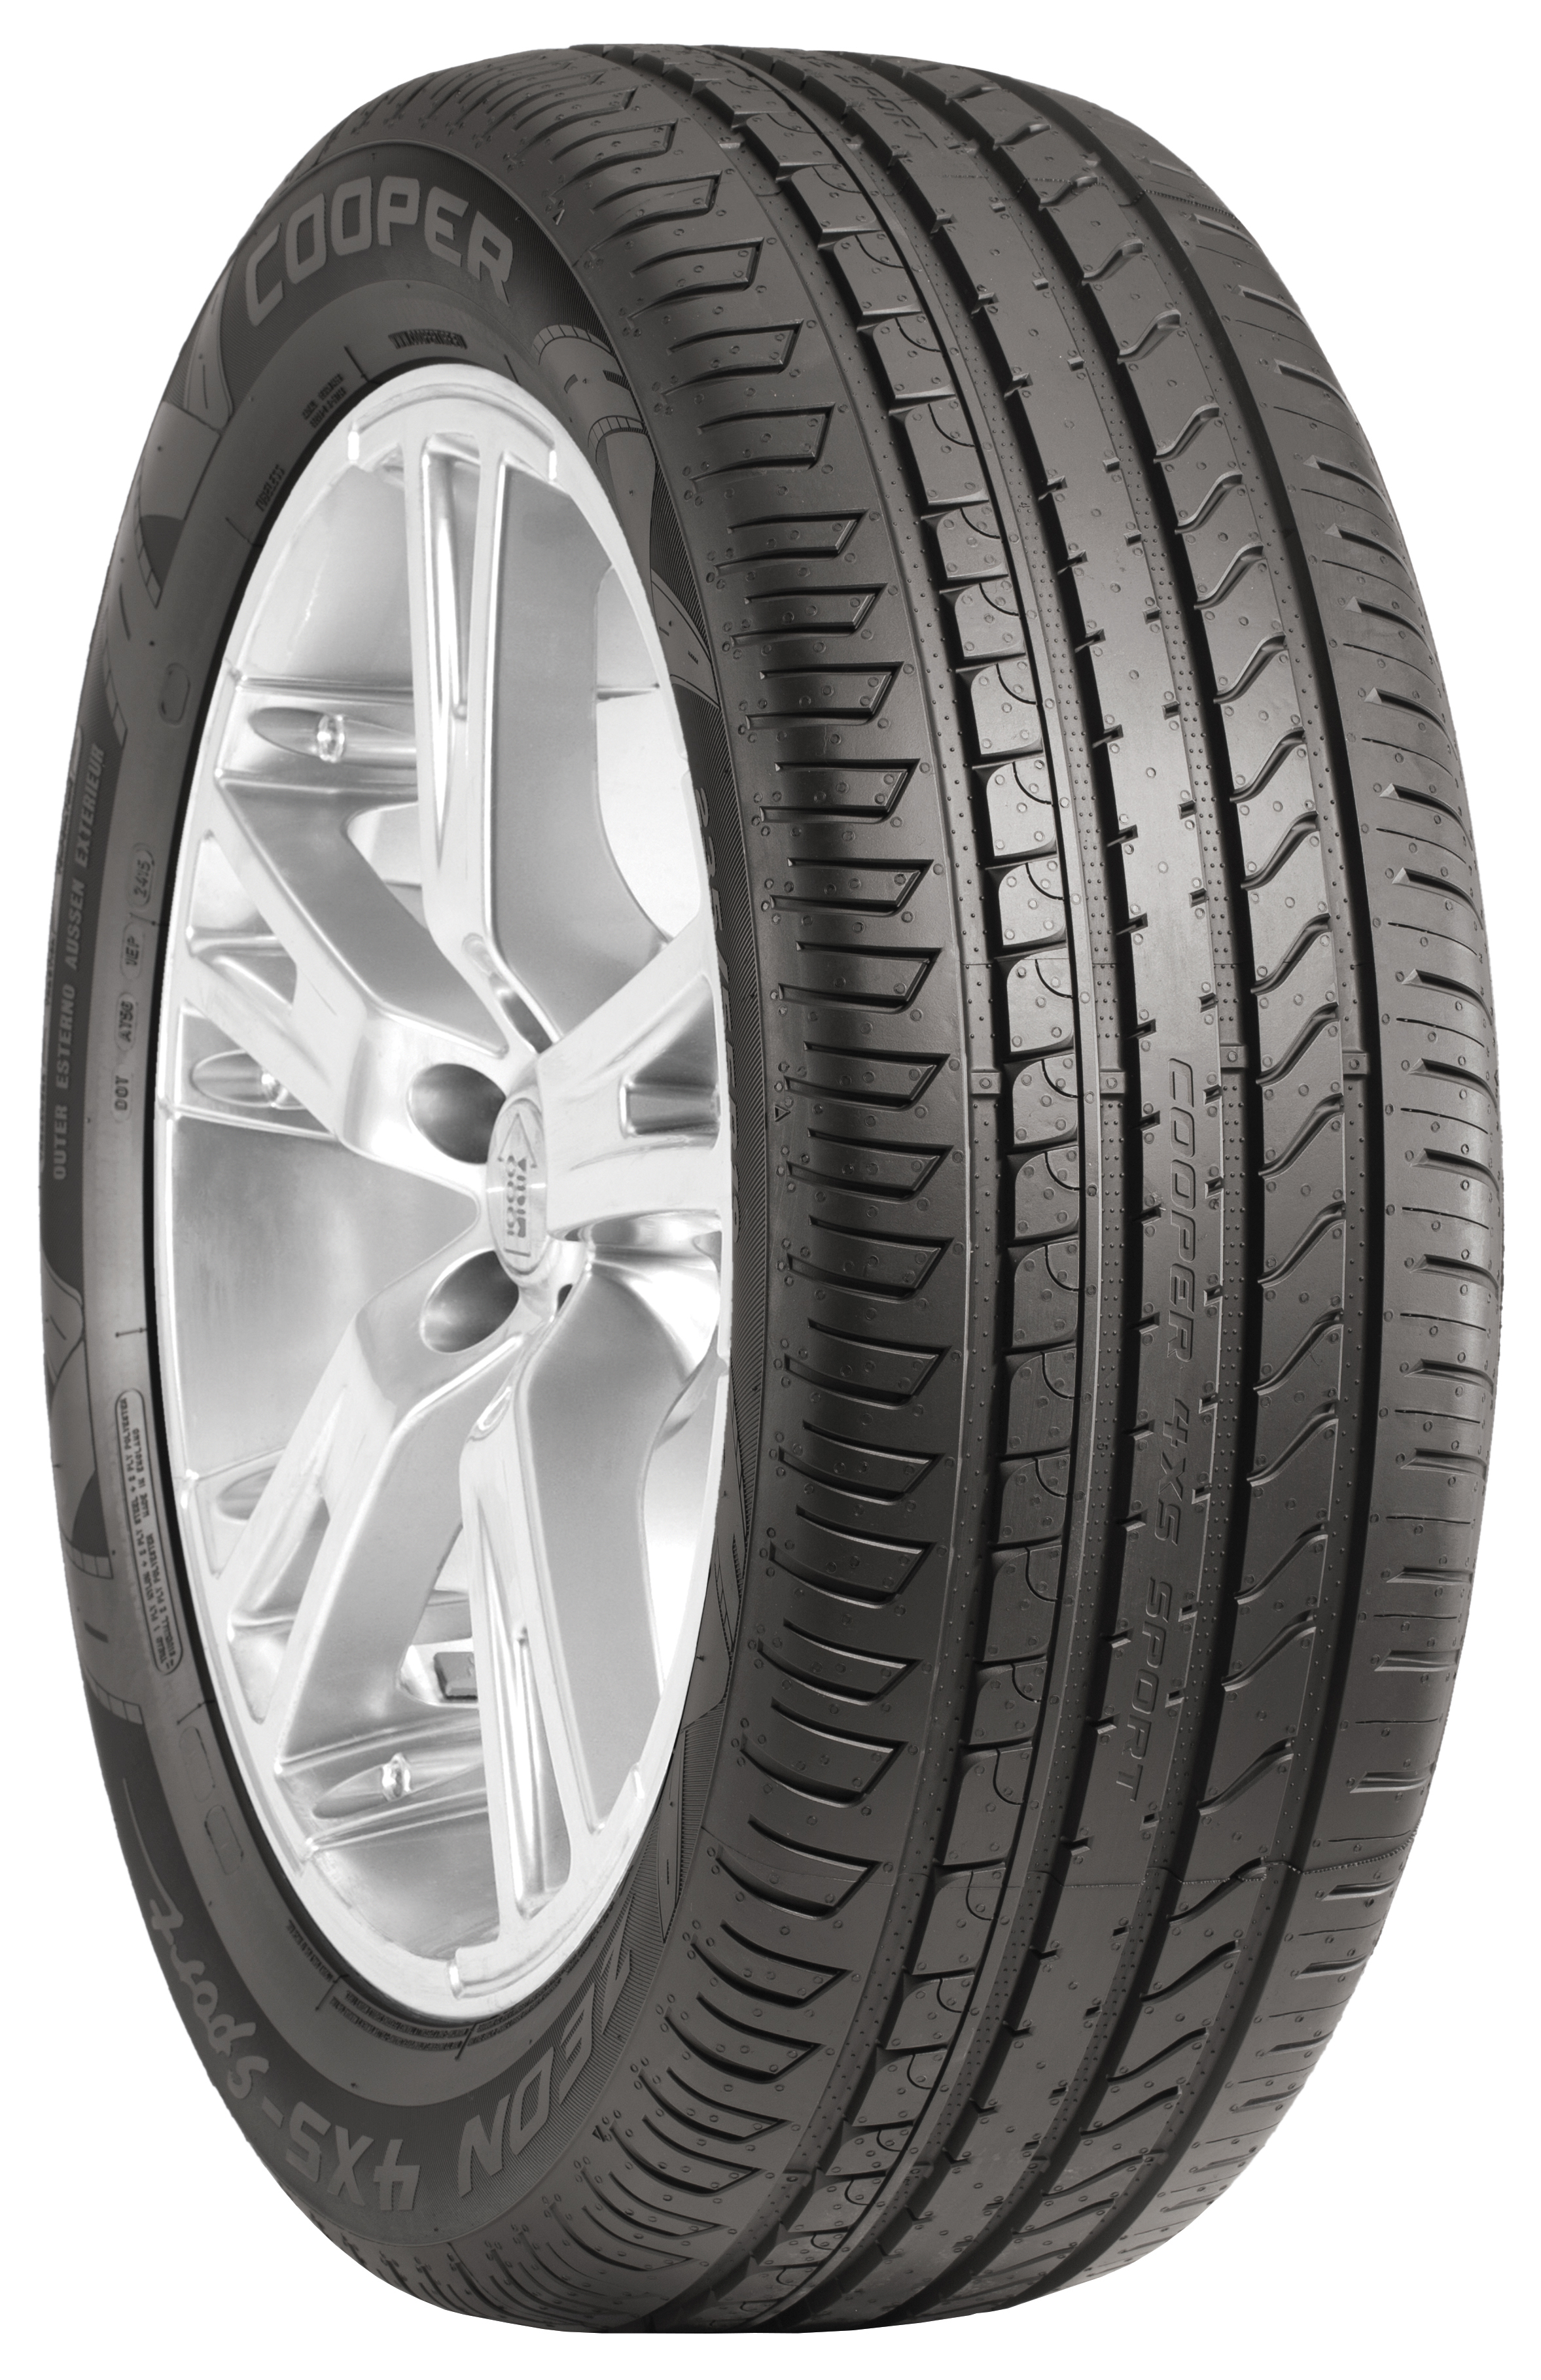 Cooper Zeon 4XS Sport SUV Tire Ranks Highly in European Testing ...